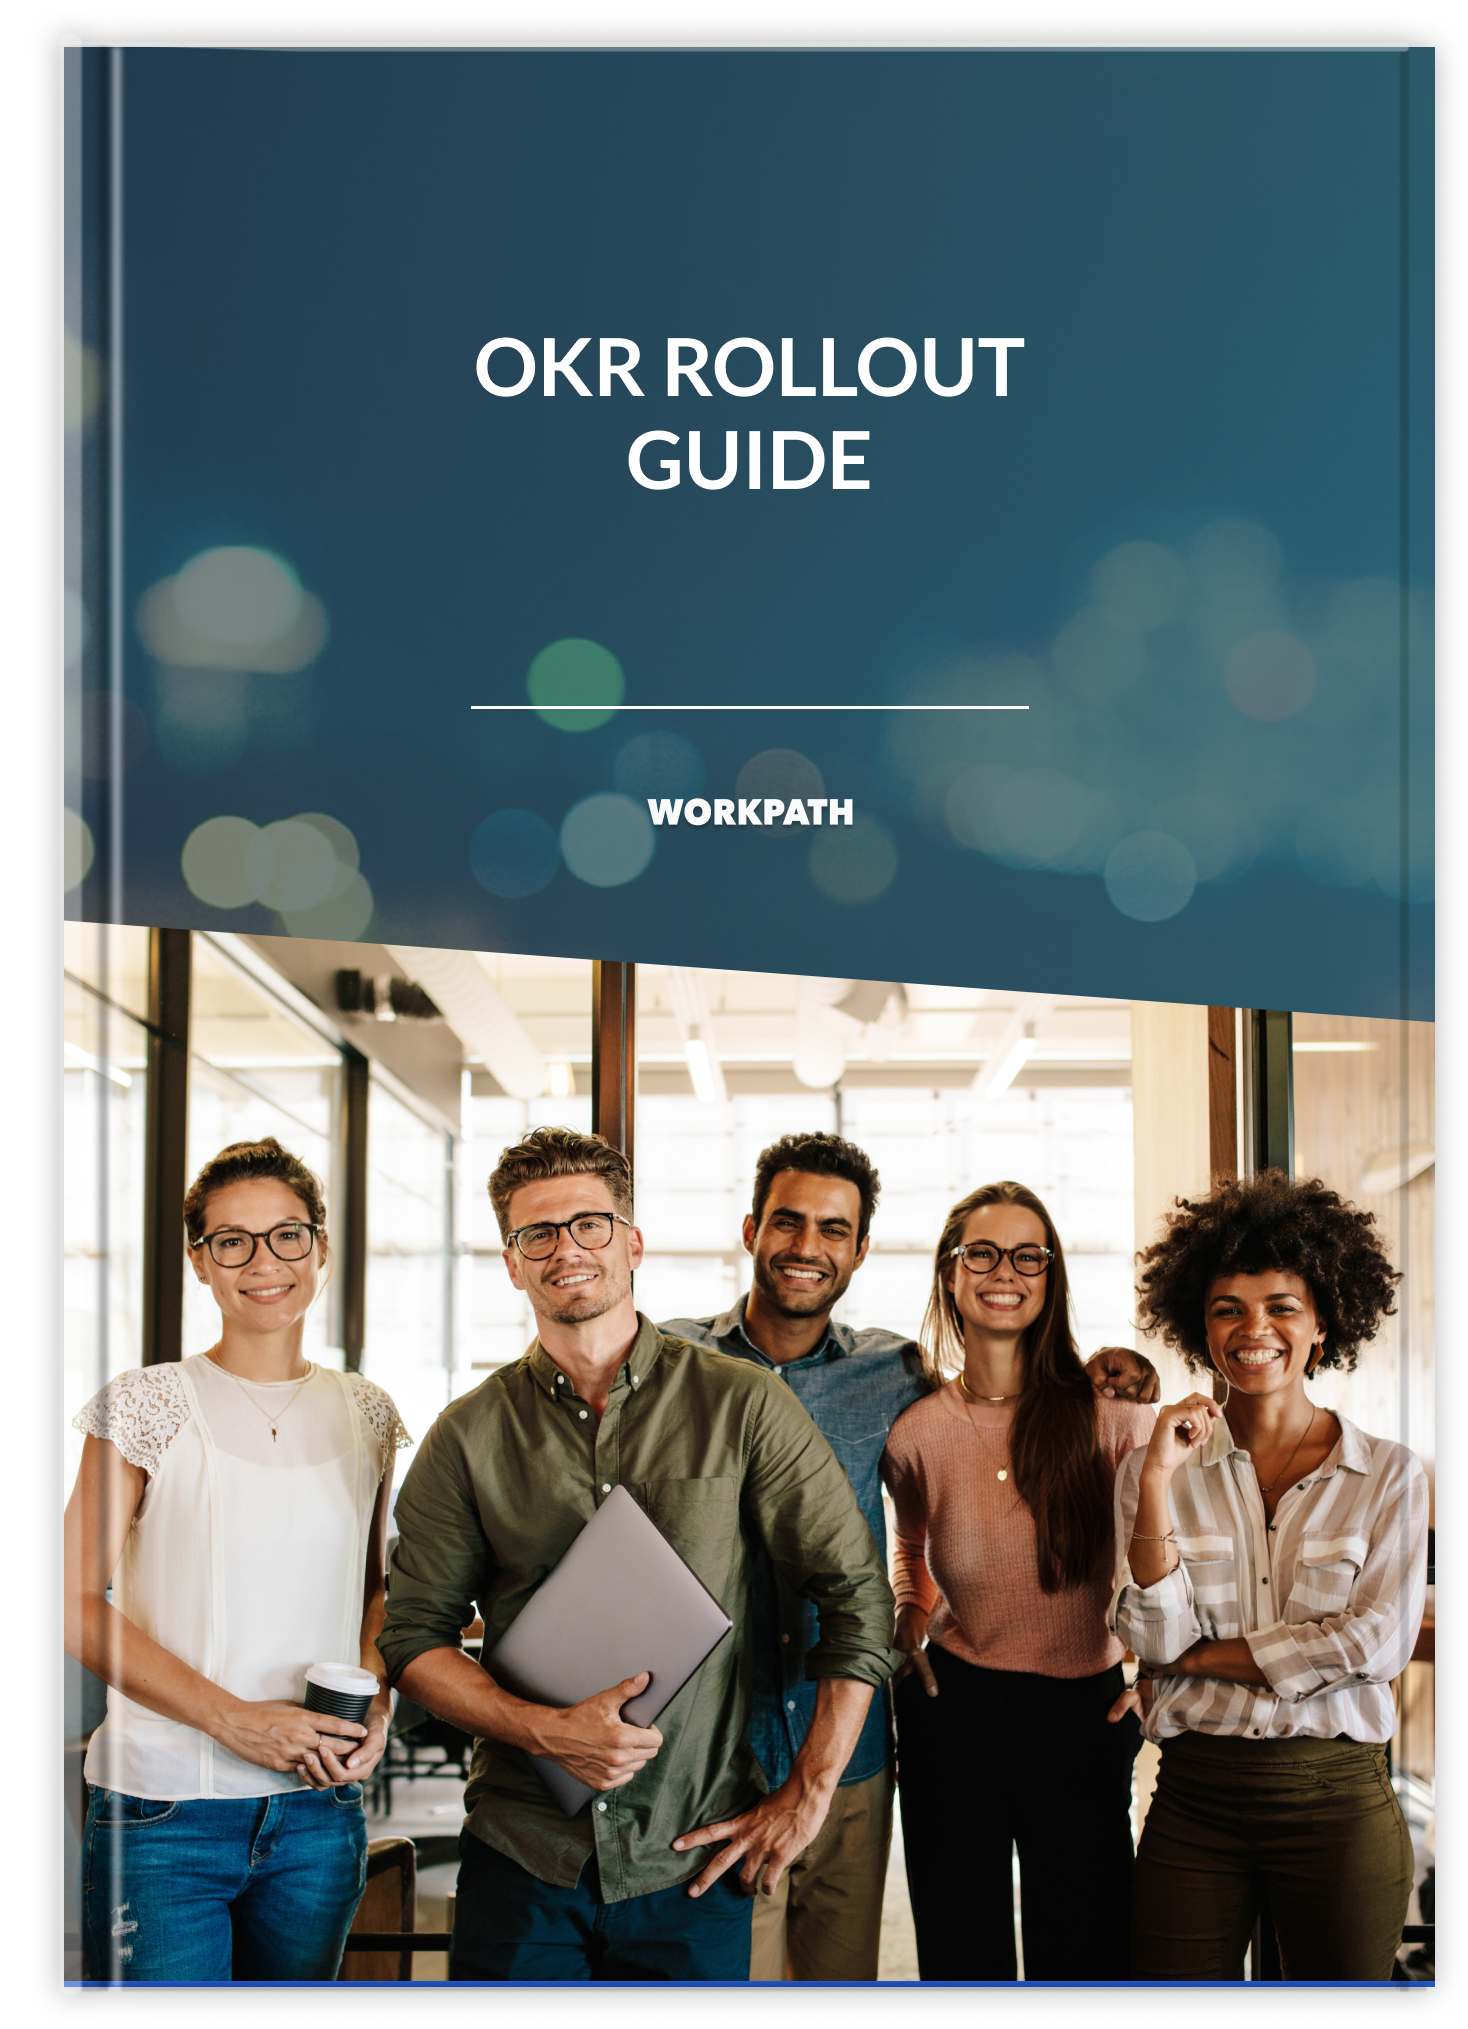 OKR Rollout Guide